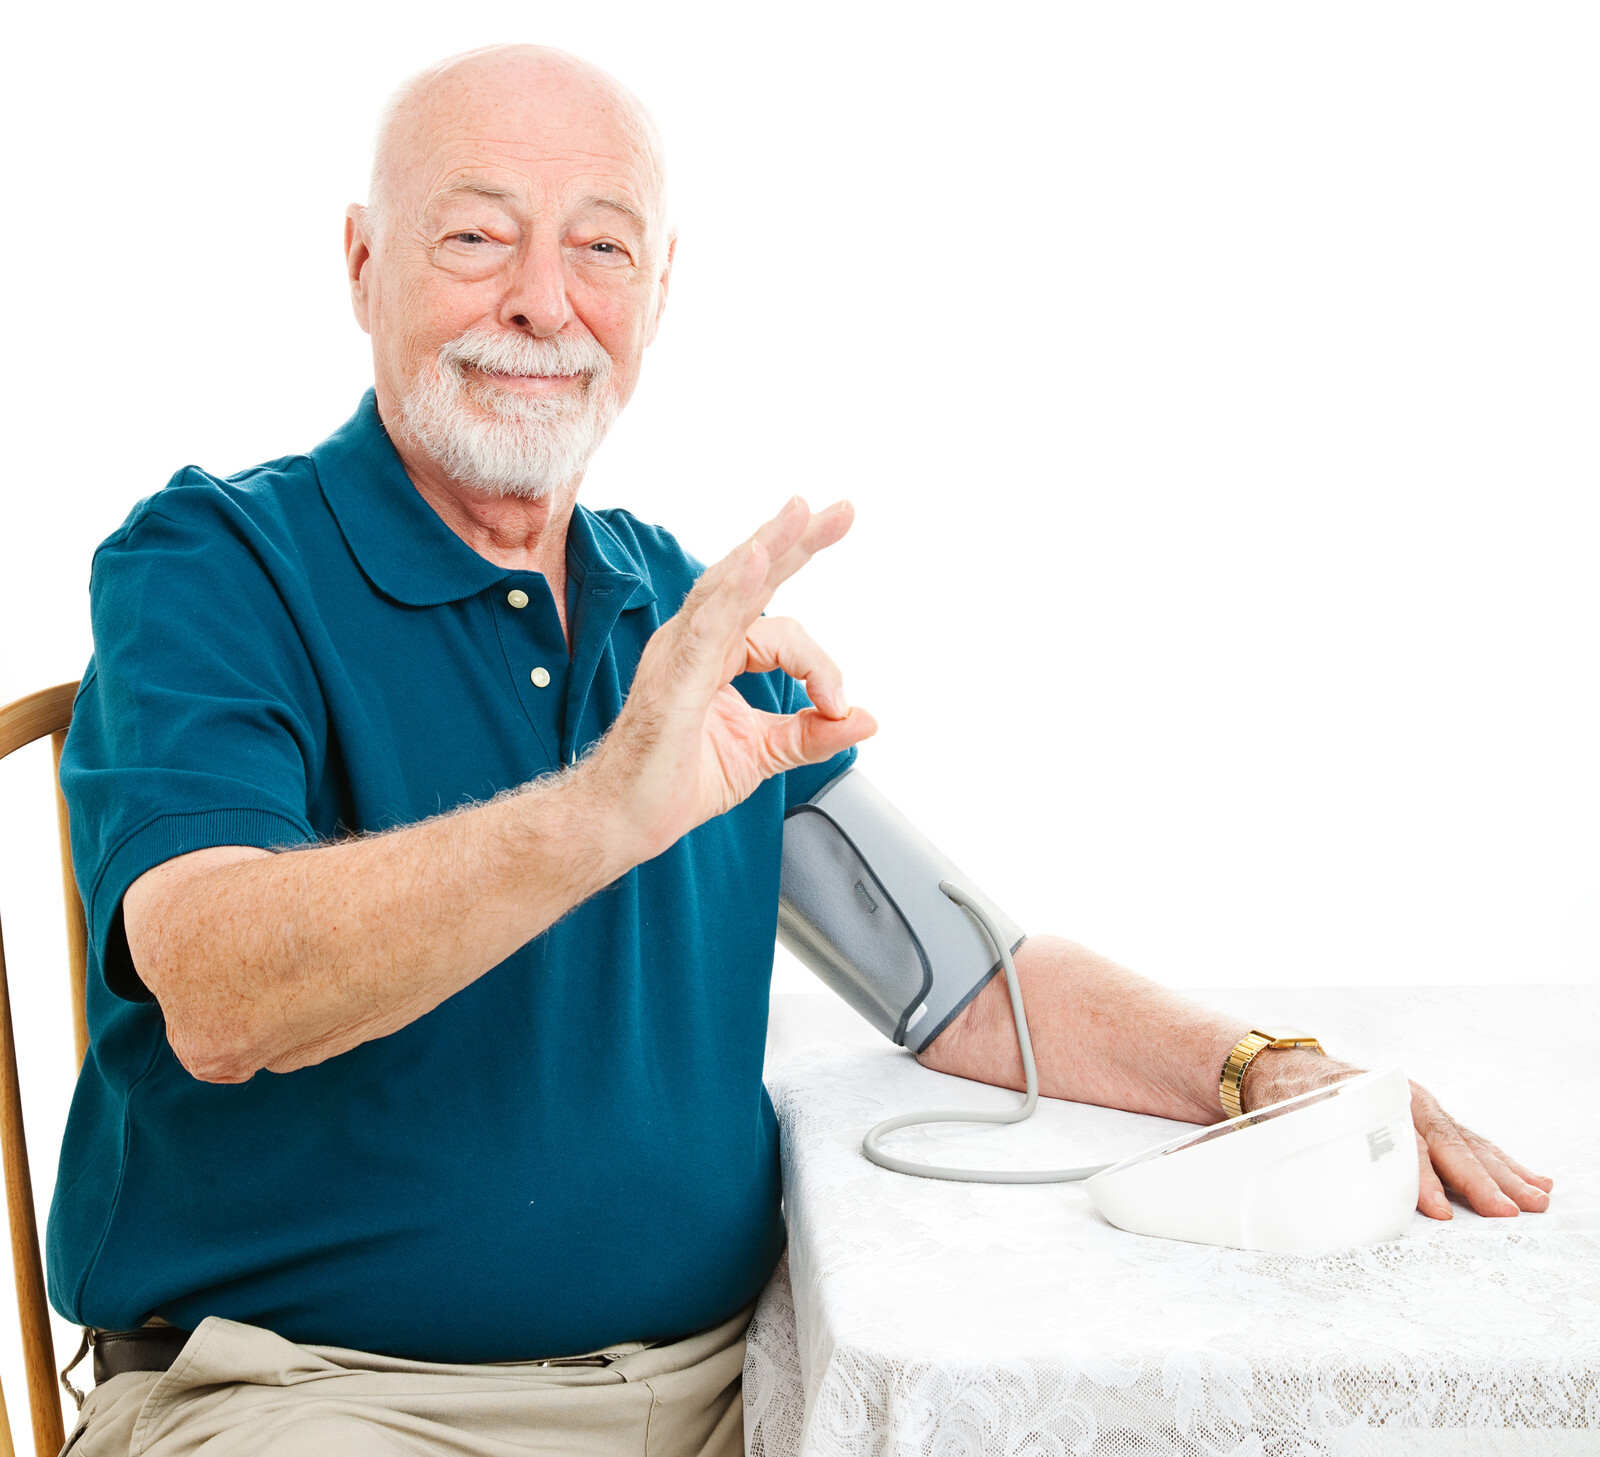 Senior man taking his blood pressure at kitchen table and giving okay hand sign.